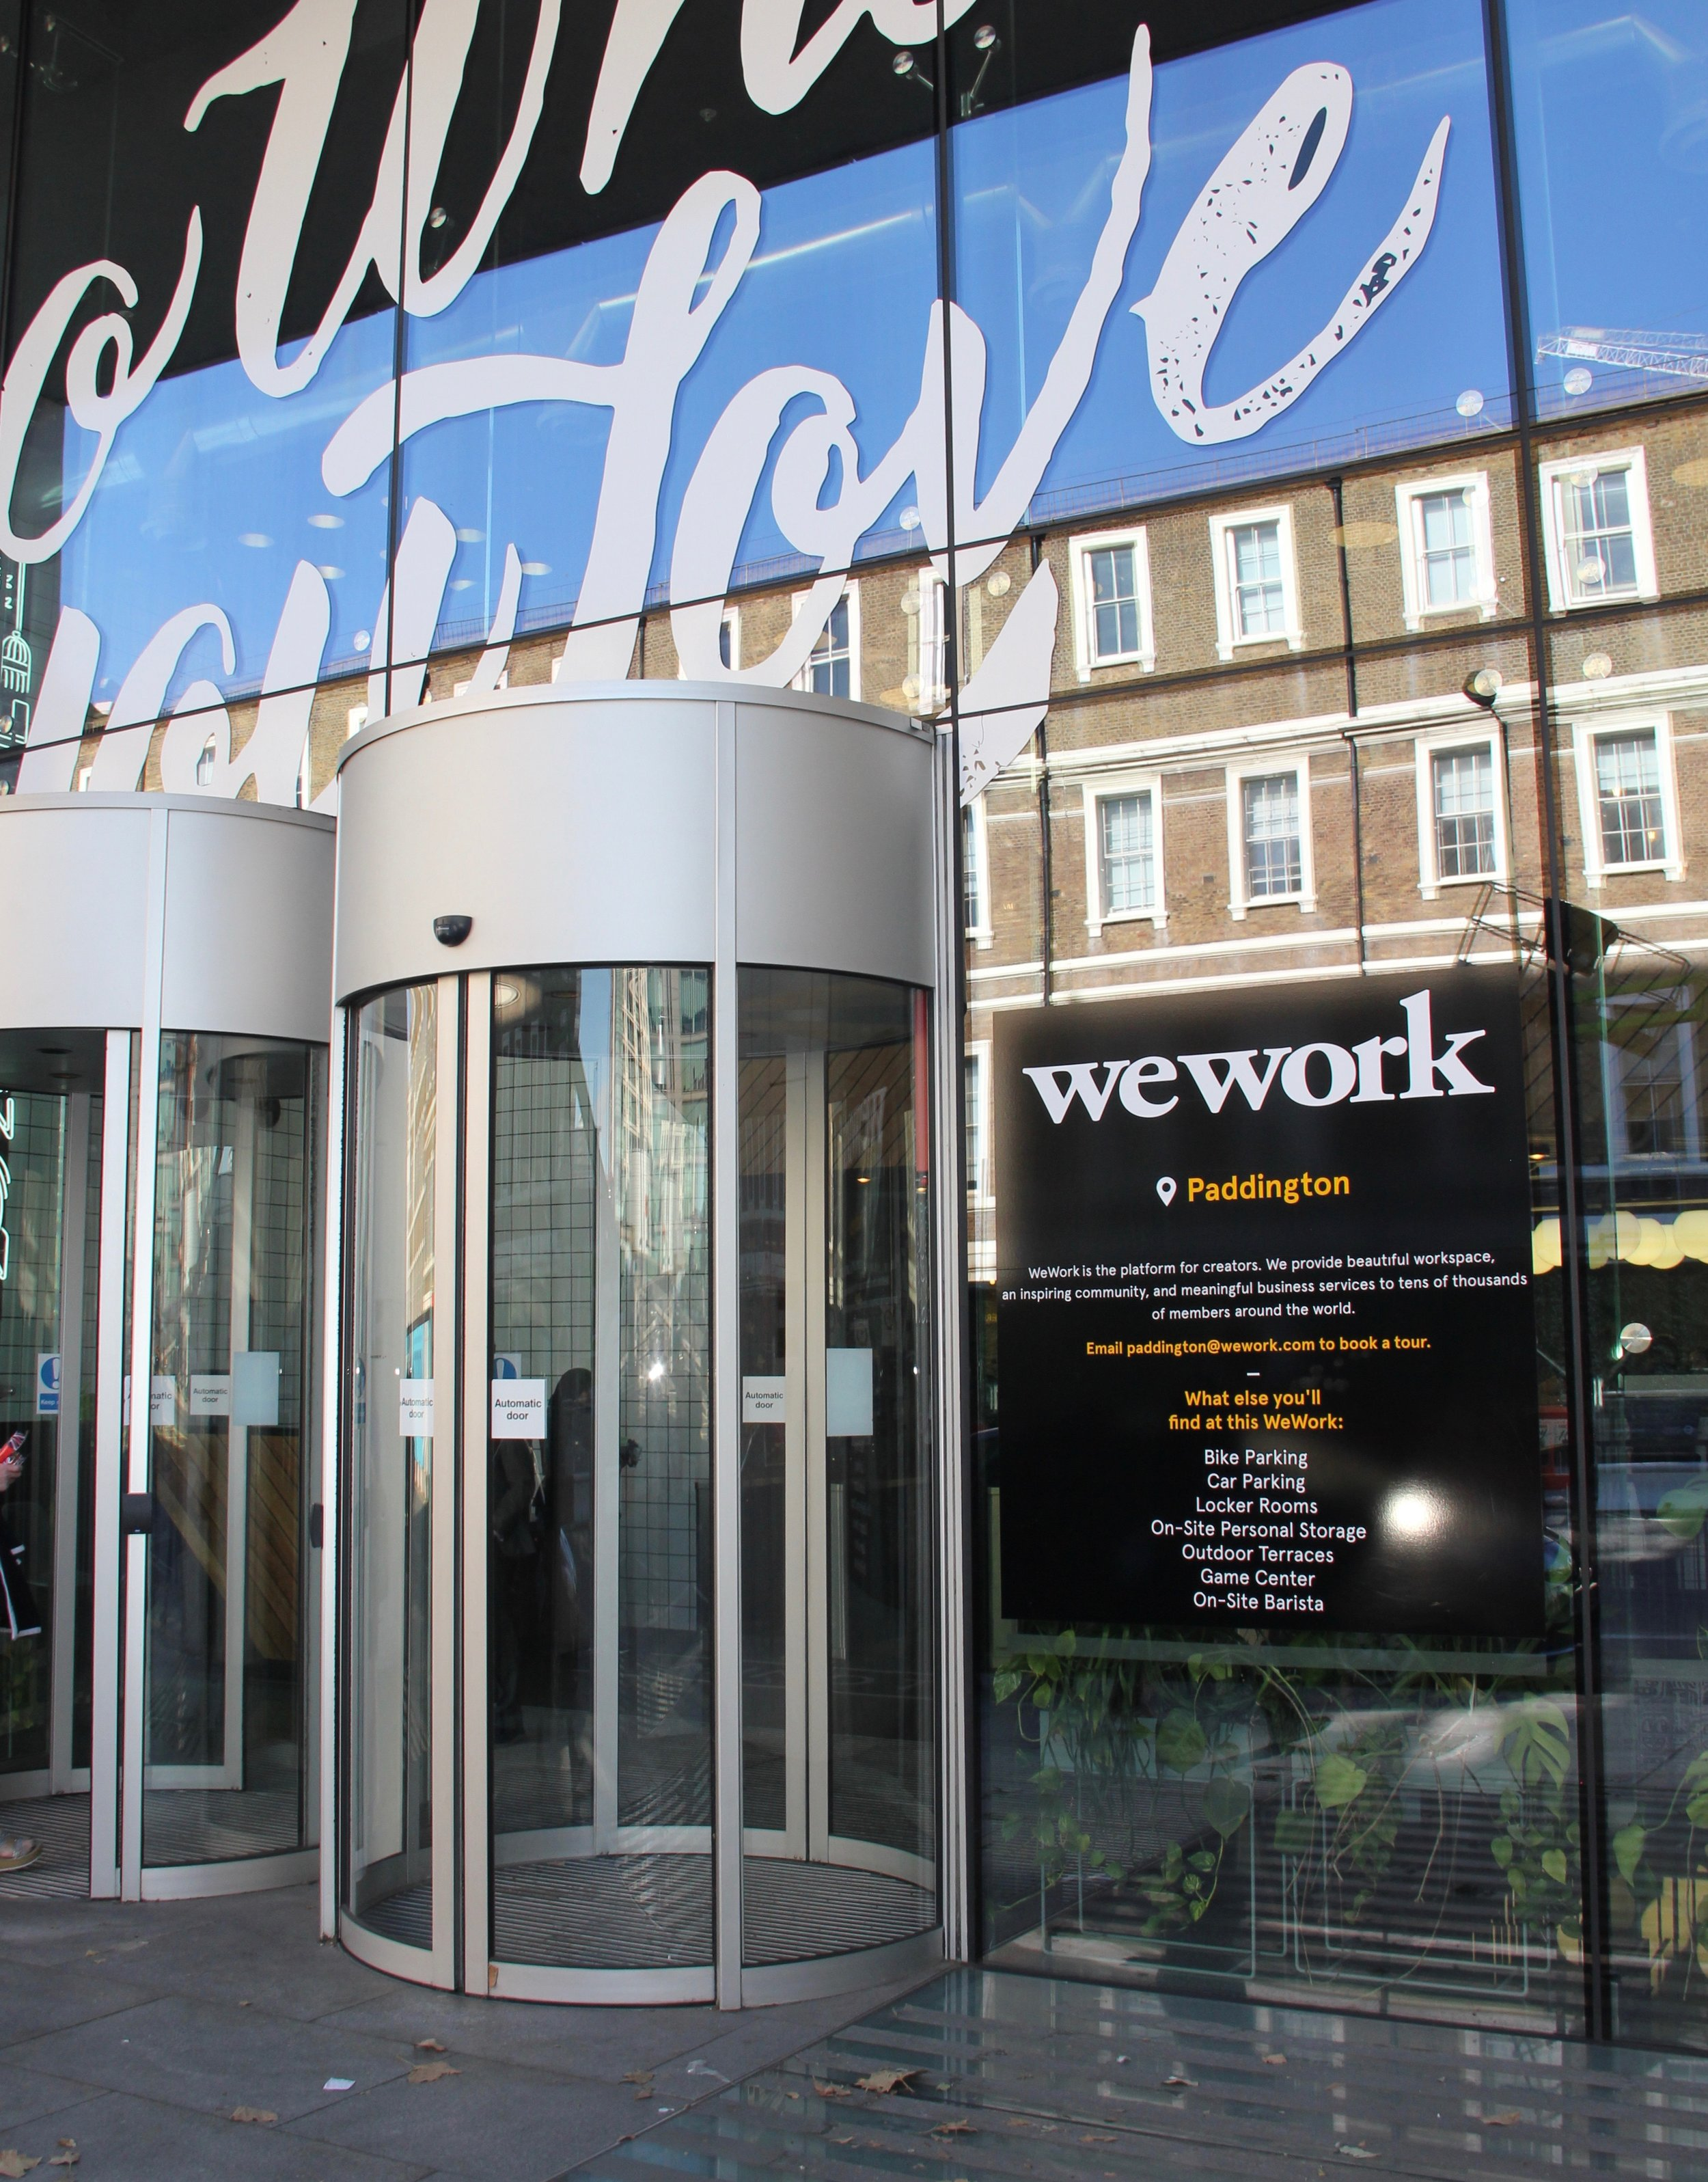 Free monthly events are held at WeWork workspace locations.